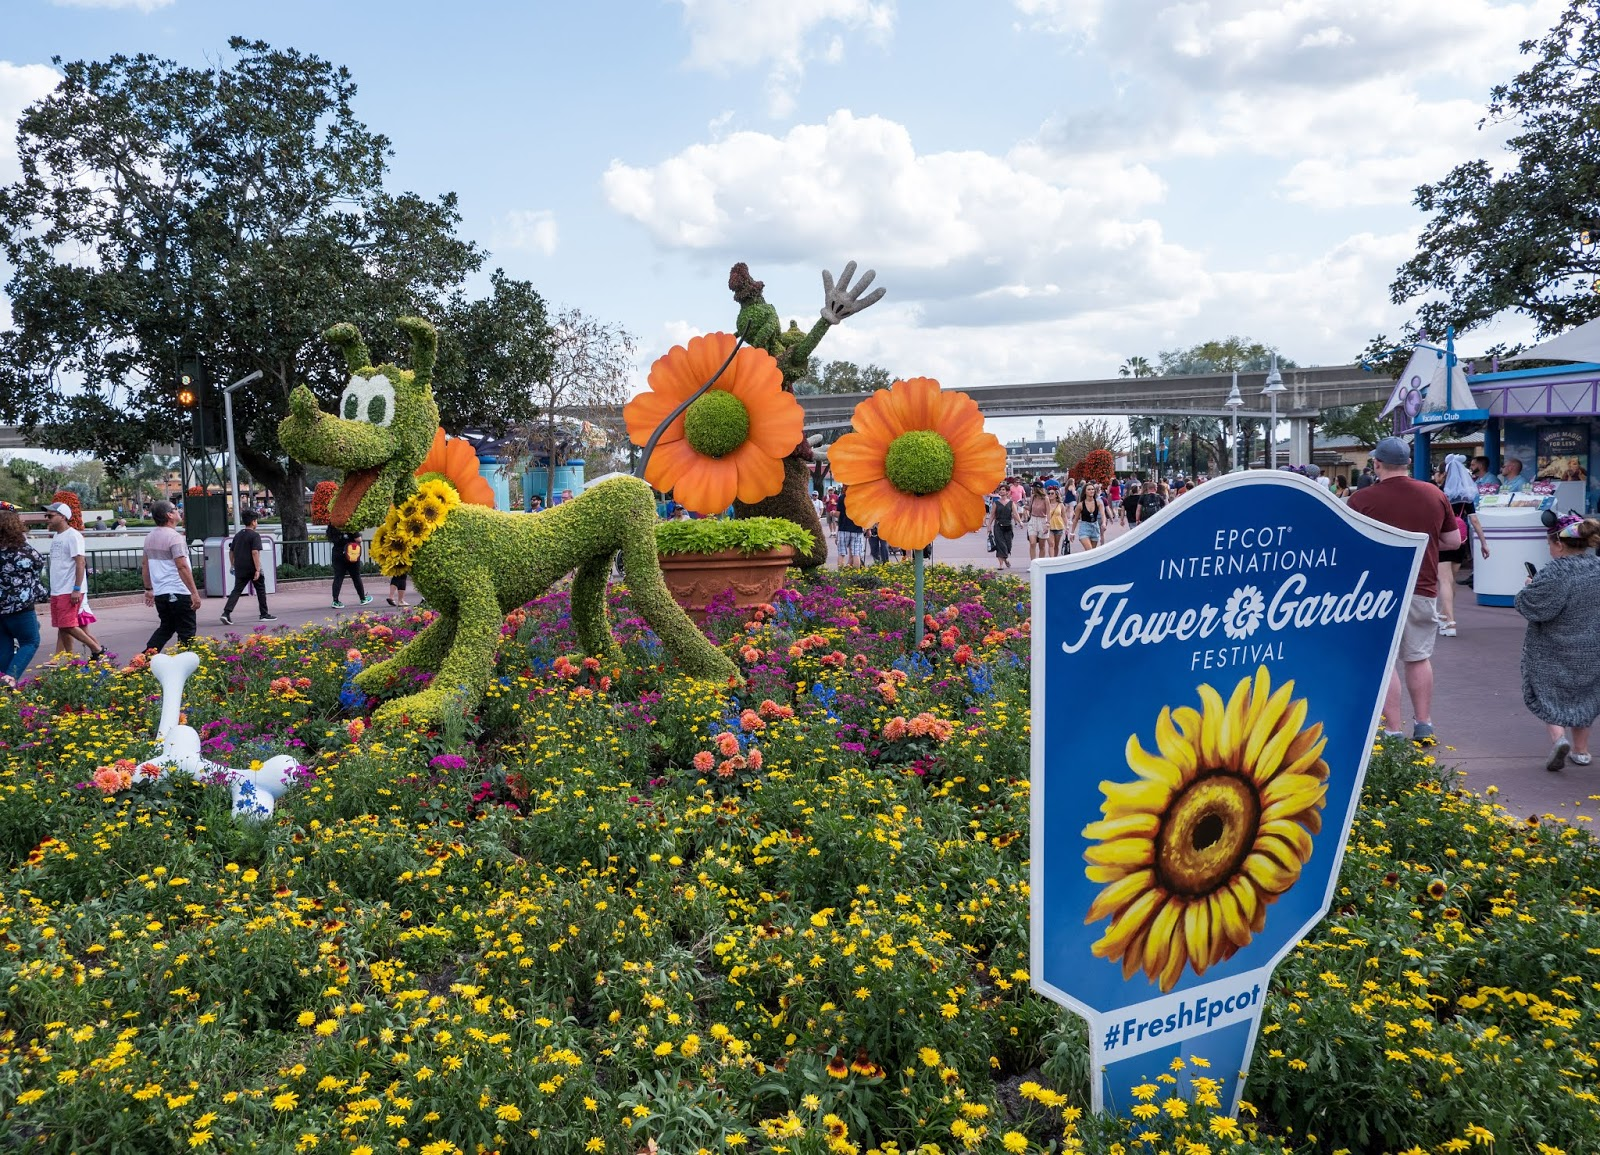 Pluto topiary at the 2019 Epcot International Flower and Garden Festival